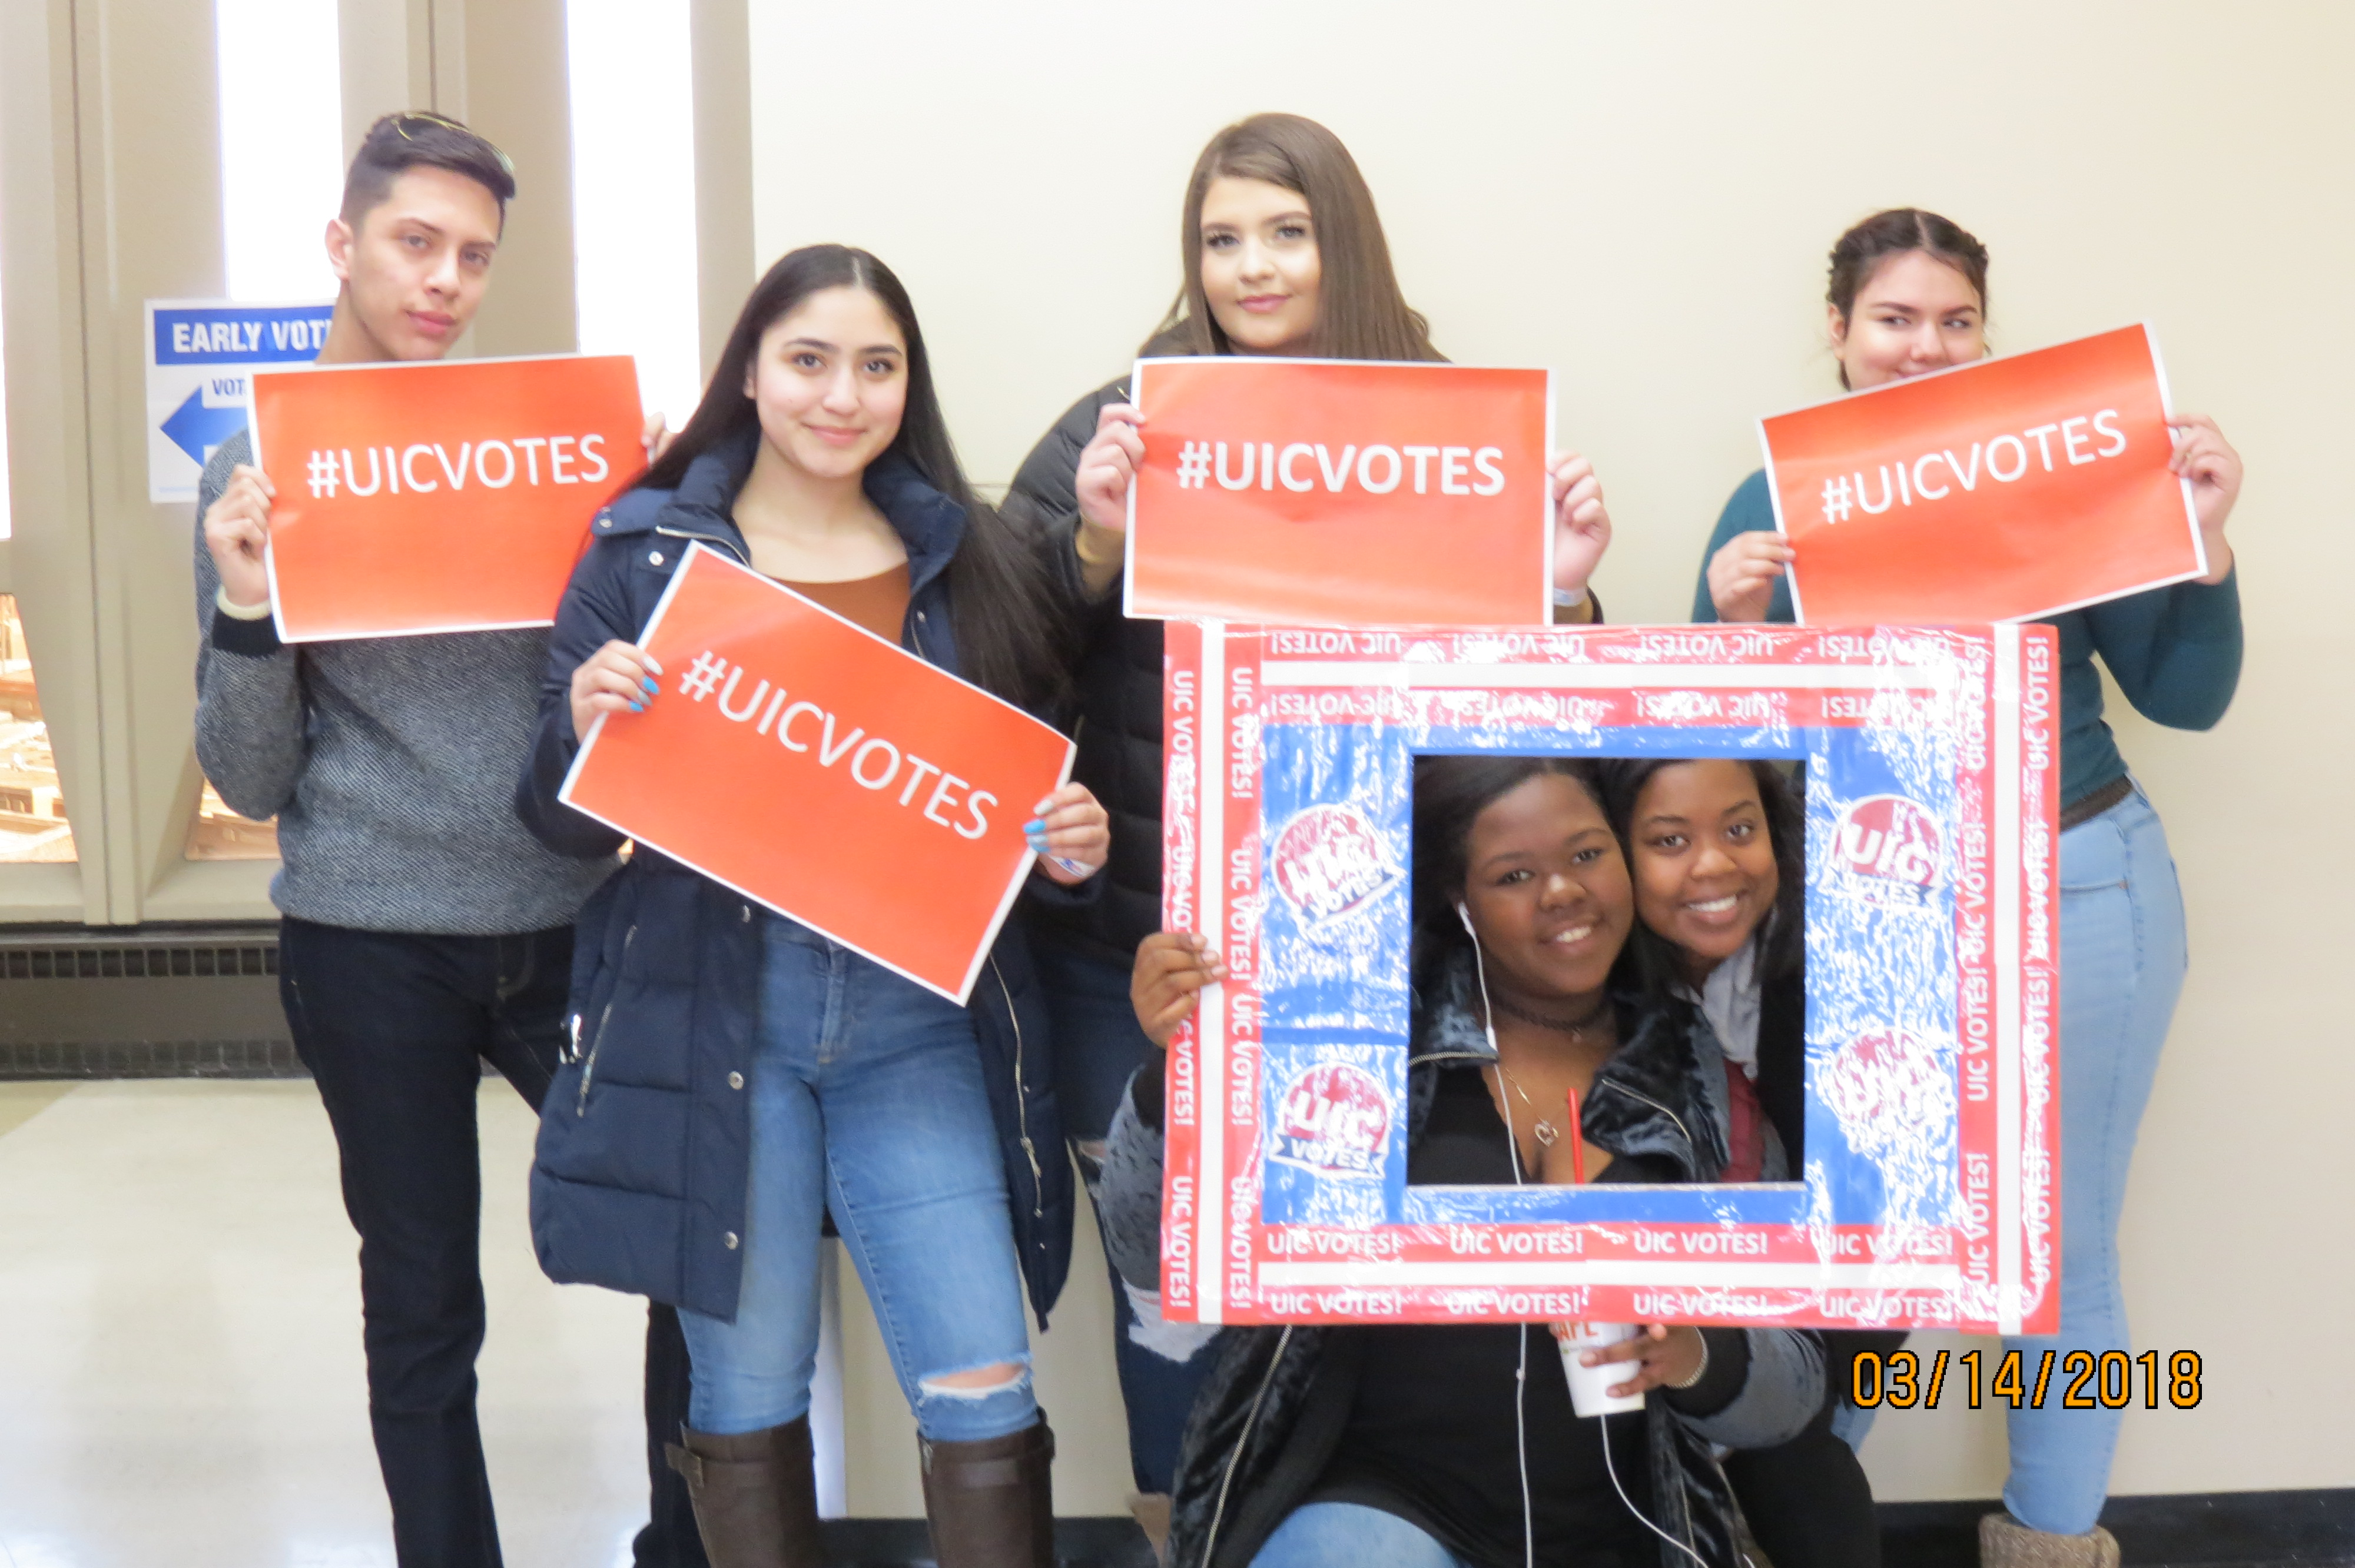 6 students stand together displaying signs that say #UICVOTES